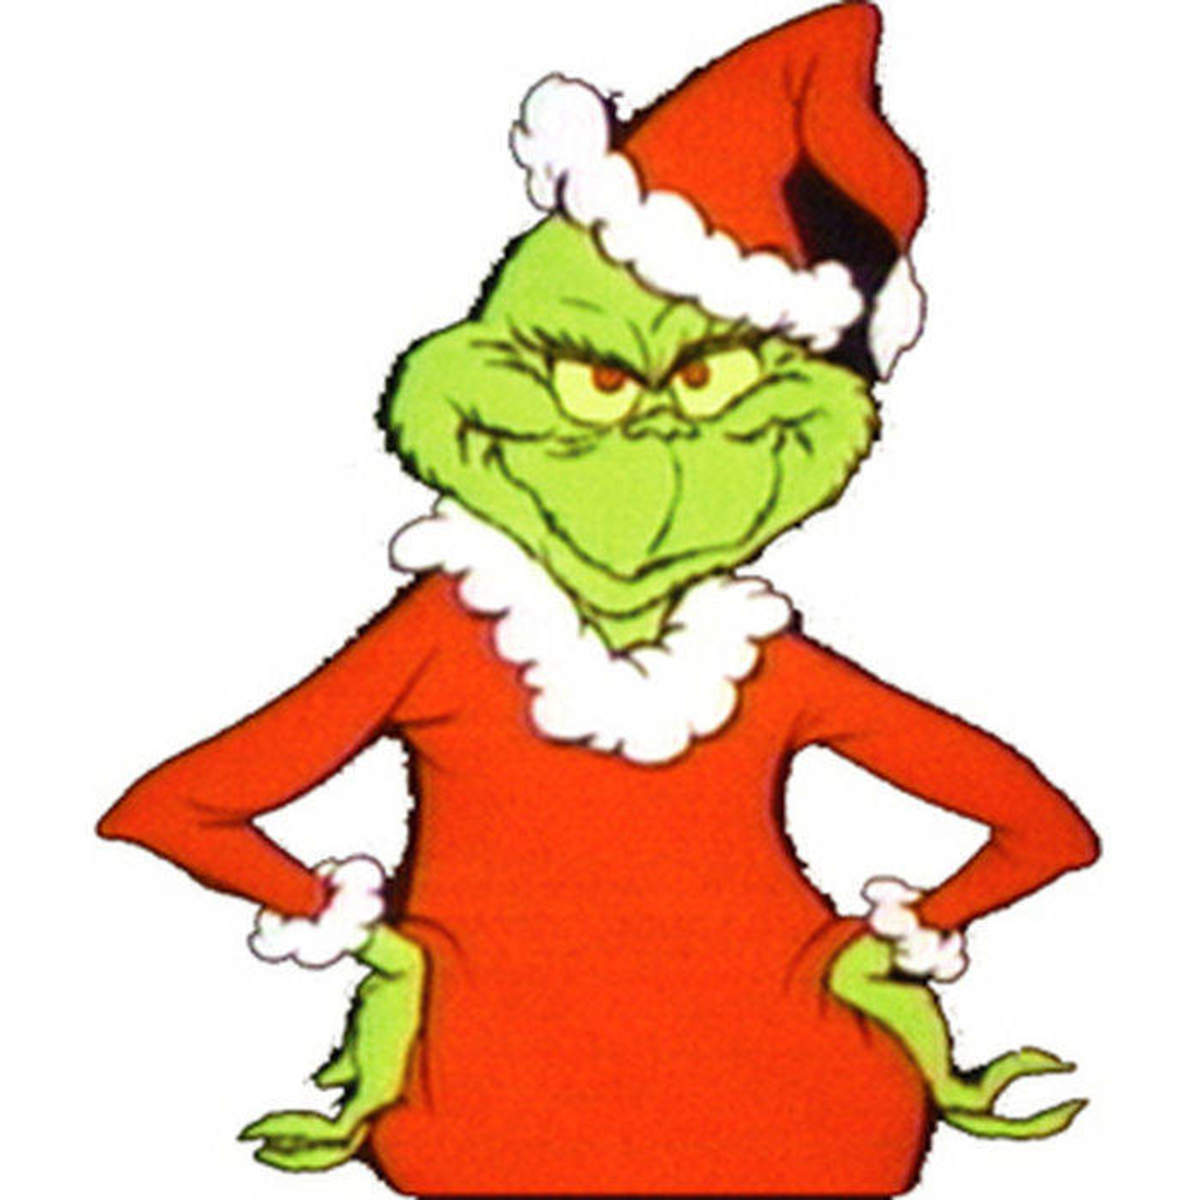 Chuck Jones modeled the TV Grinch after himself